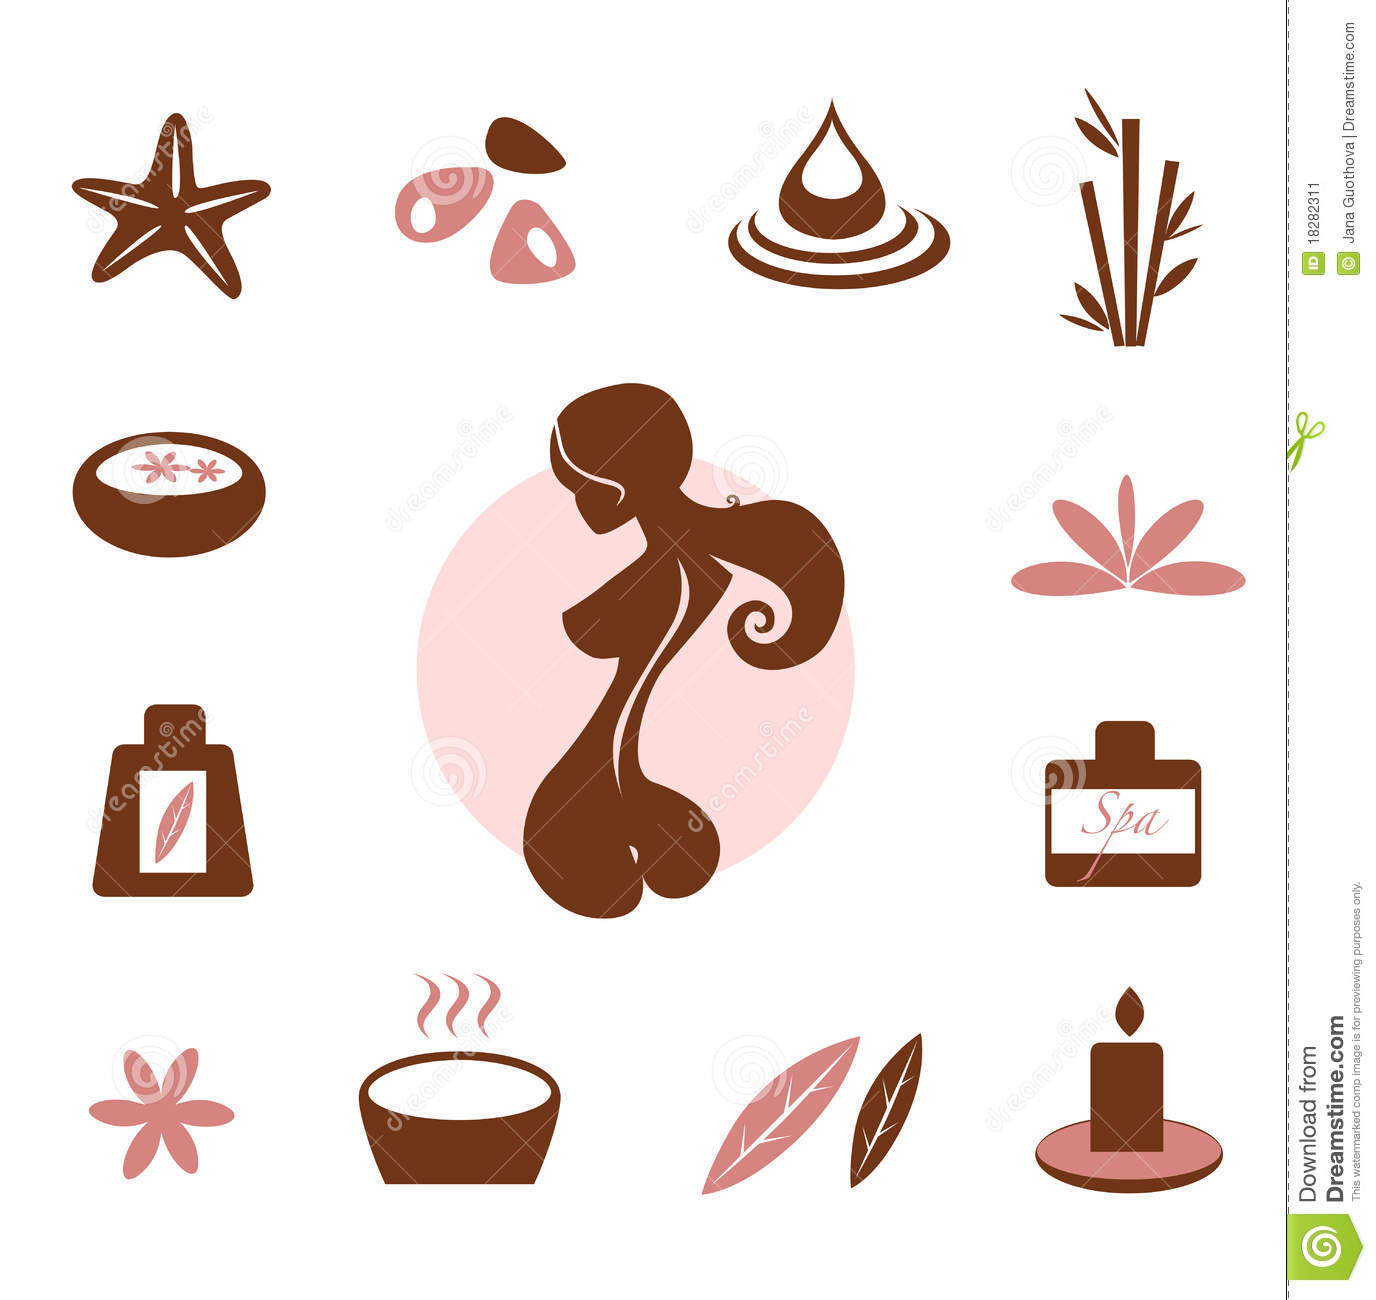 Wellness icon  Spa And Wellness Icon Collection - Brown Stock Image - Image: 18282311